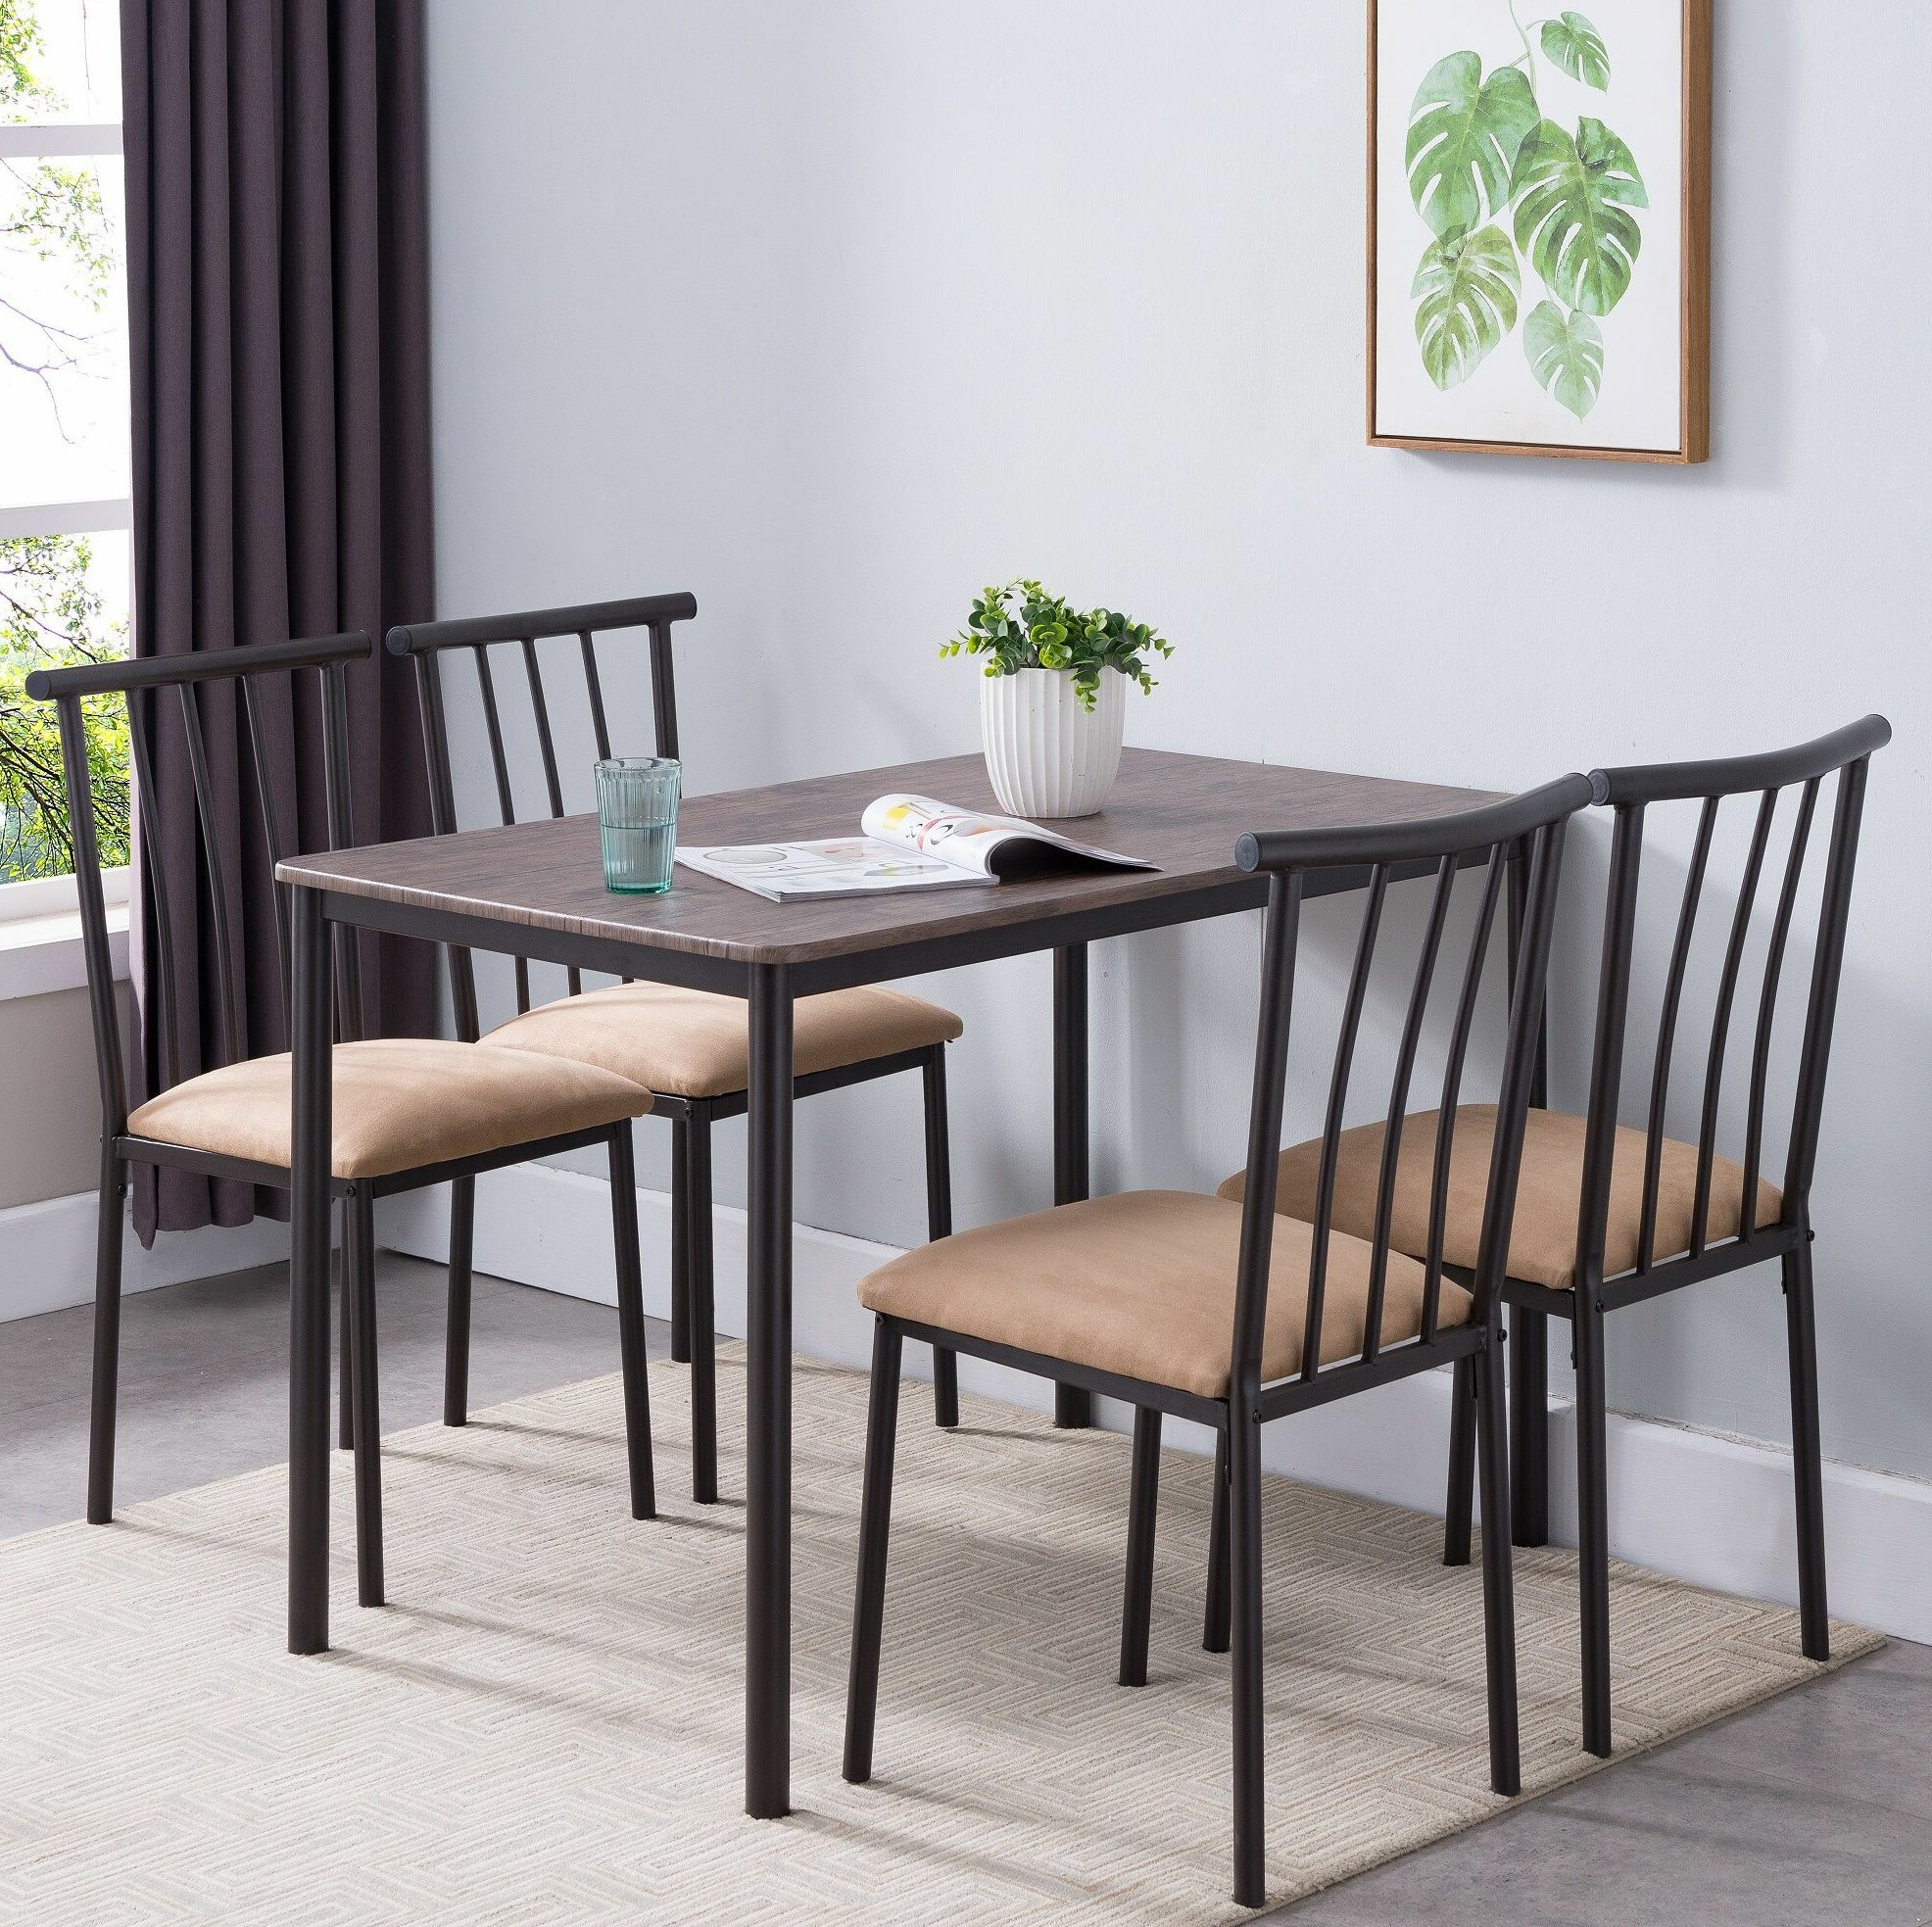 Most Recently Released Casiano 5 Piece Dining Sets With Regard To Stclair 5 Piece Dining Set (View 13 of 20)